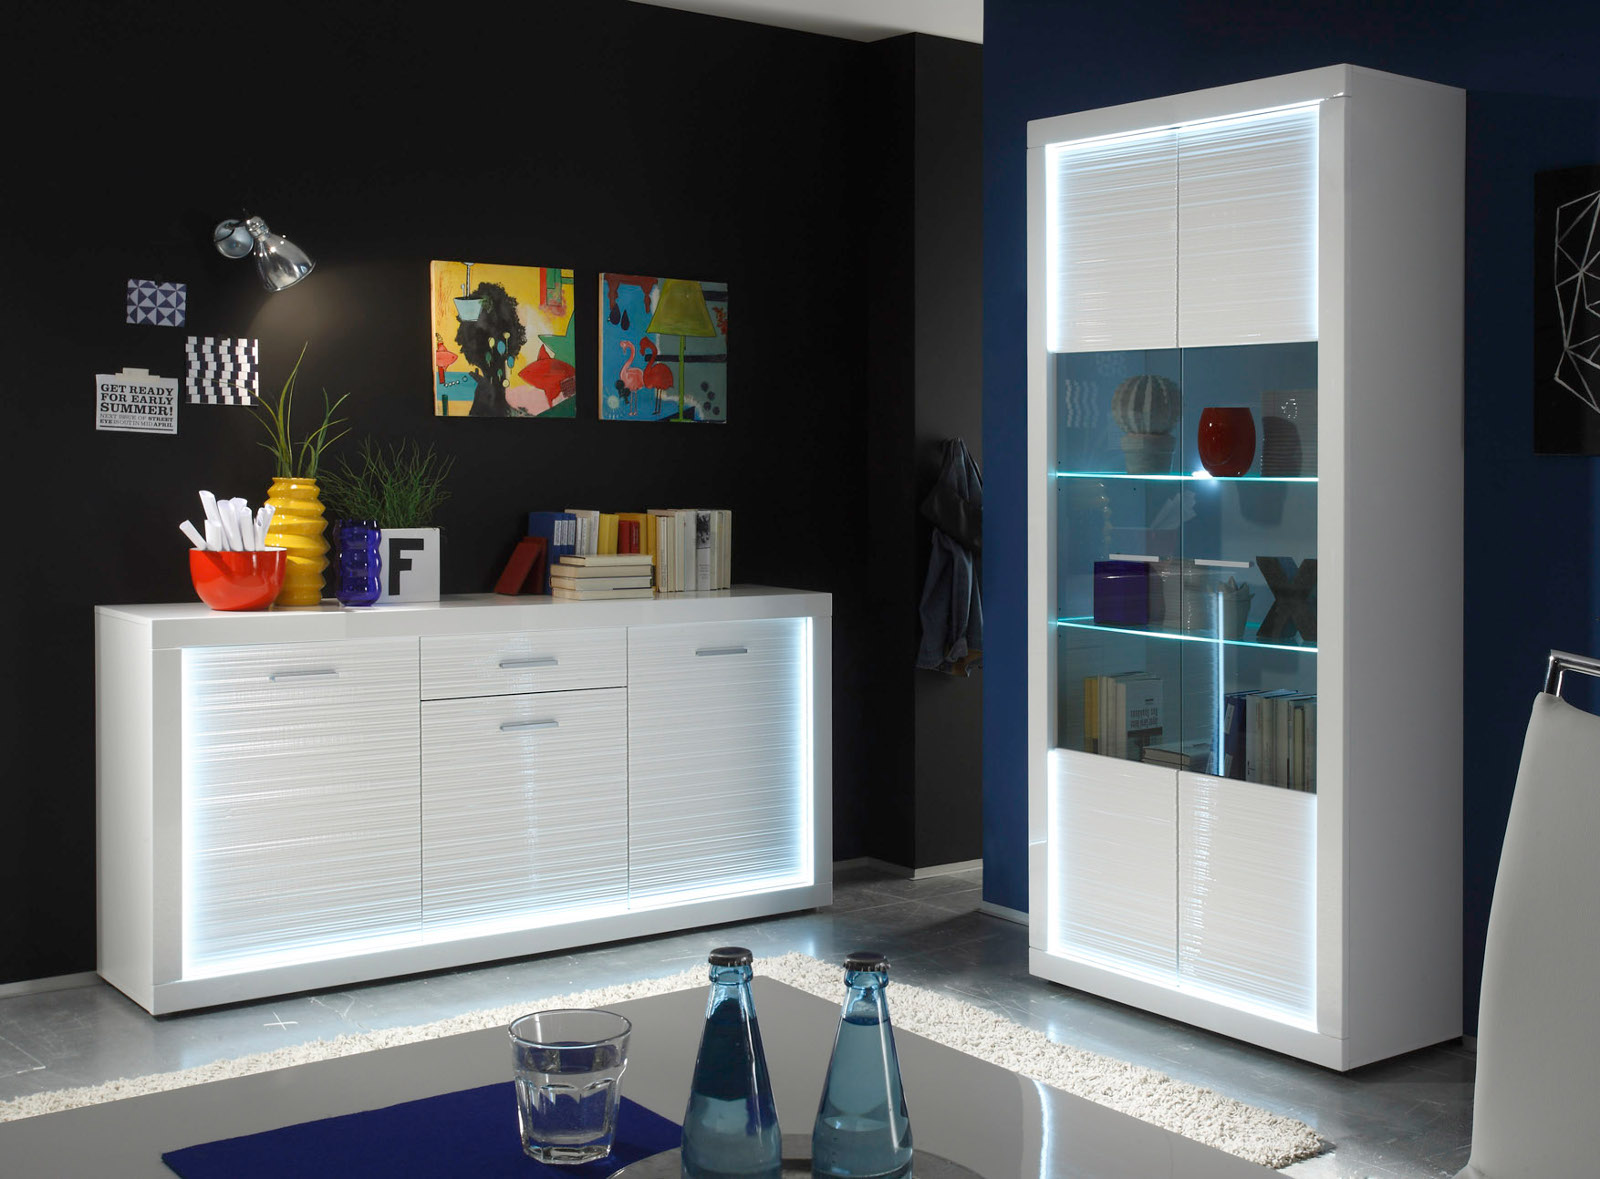 vitrinenschrank wei hochglanz rillenoptik mit led. Black Bedroom Furniture Sets. Home Design Ideas